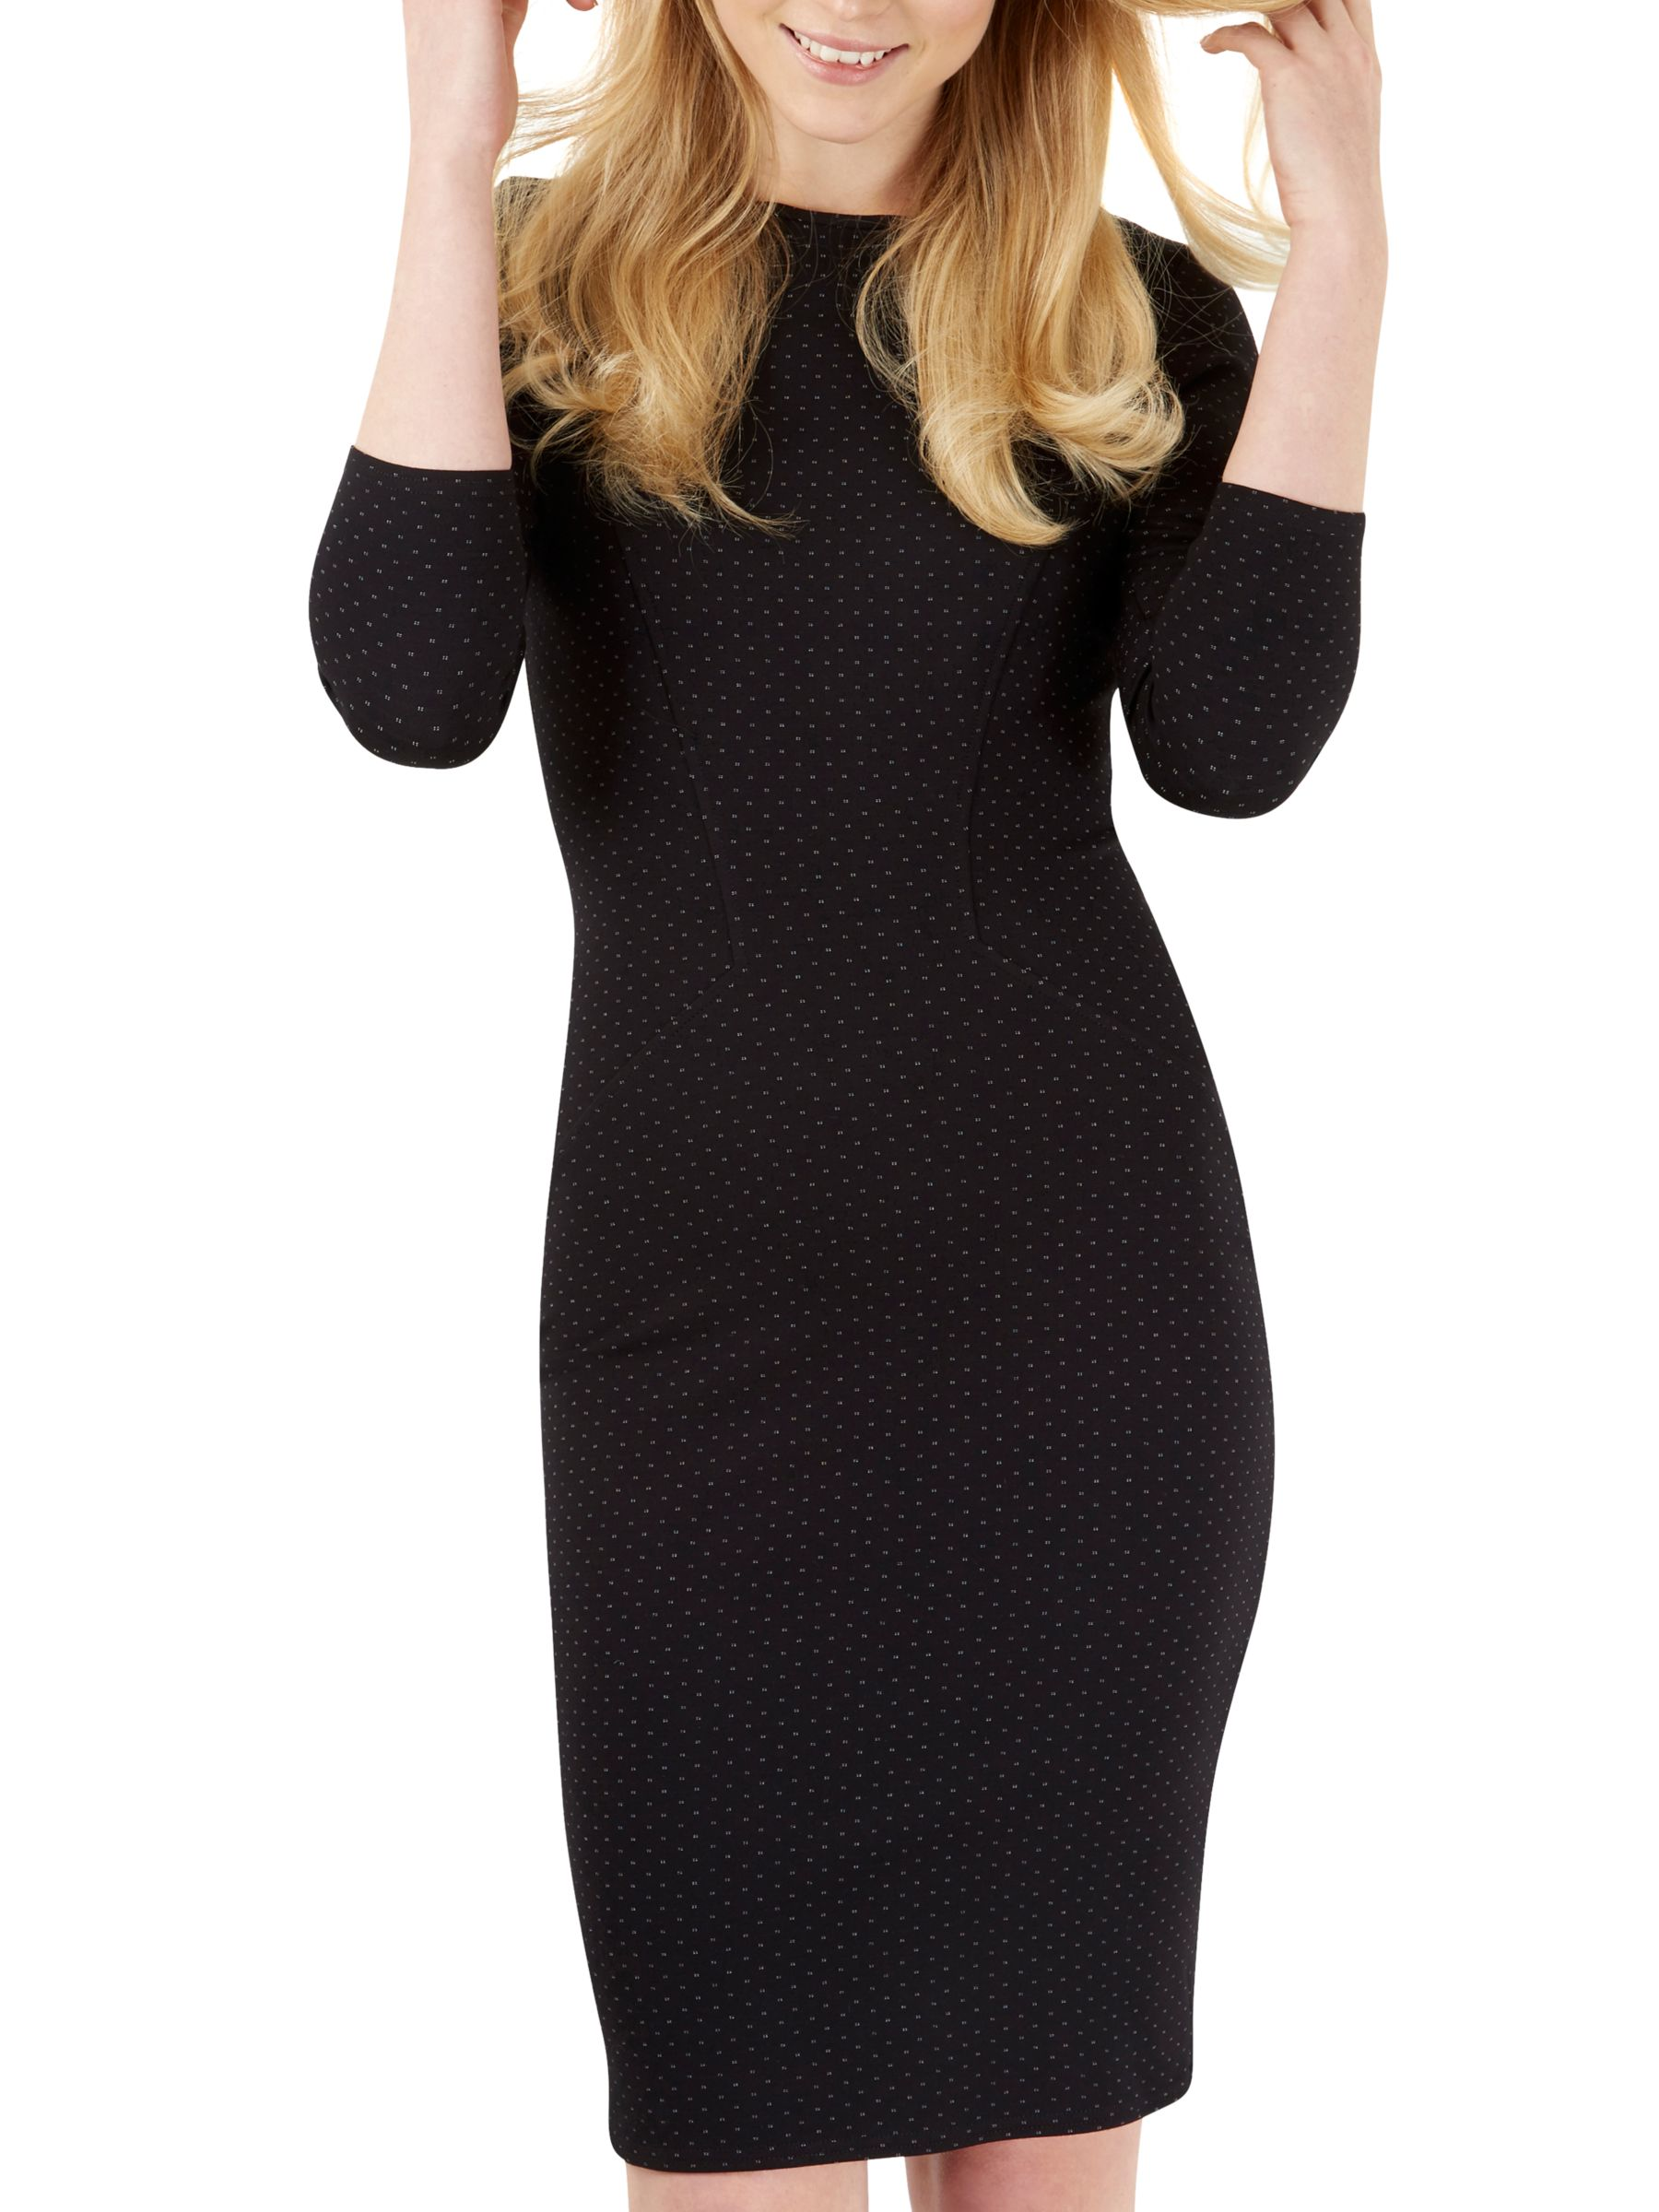 Closet Closet Three-Quarter Sleeve Bodycon Dress, Black